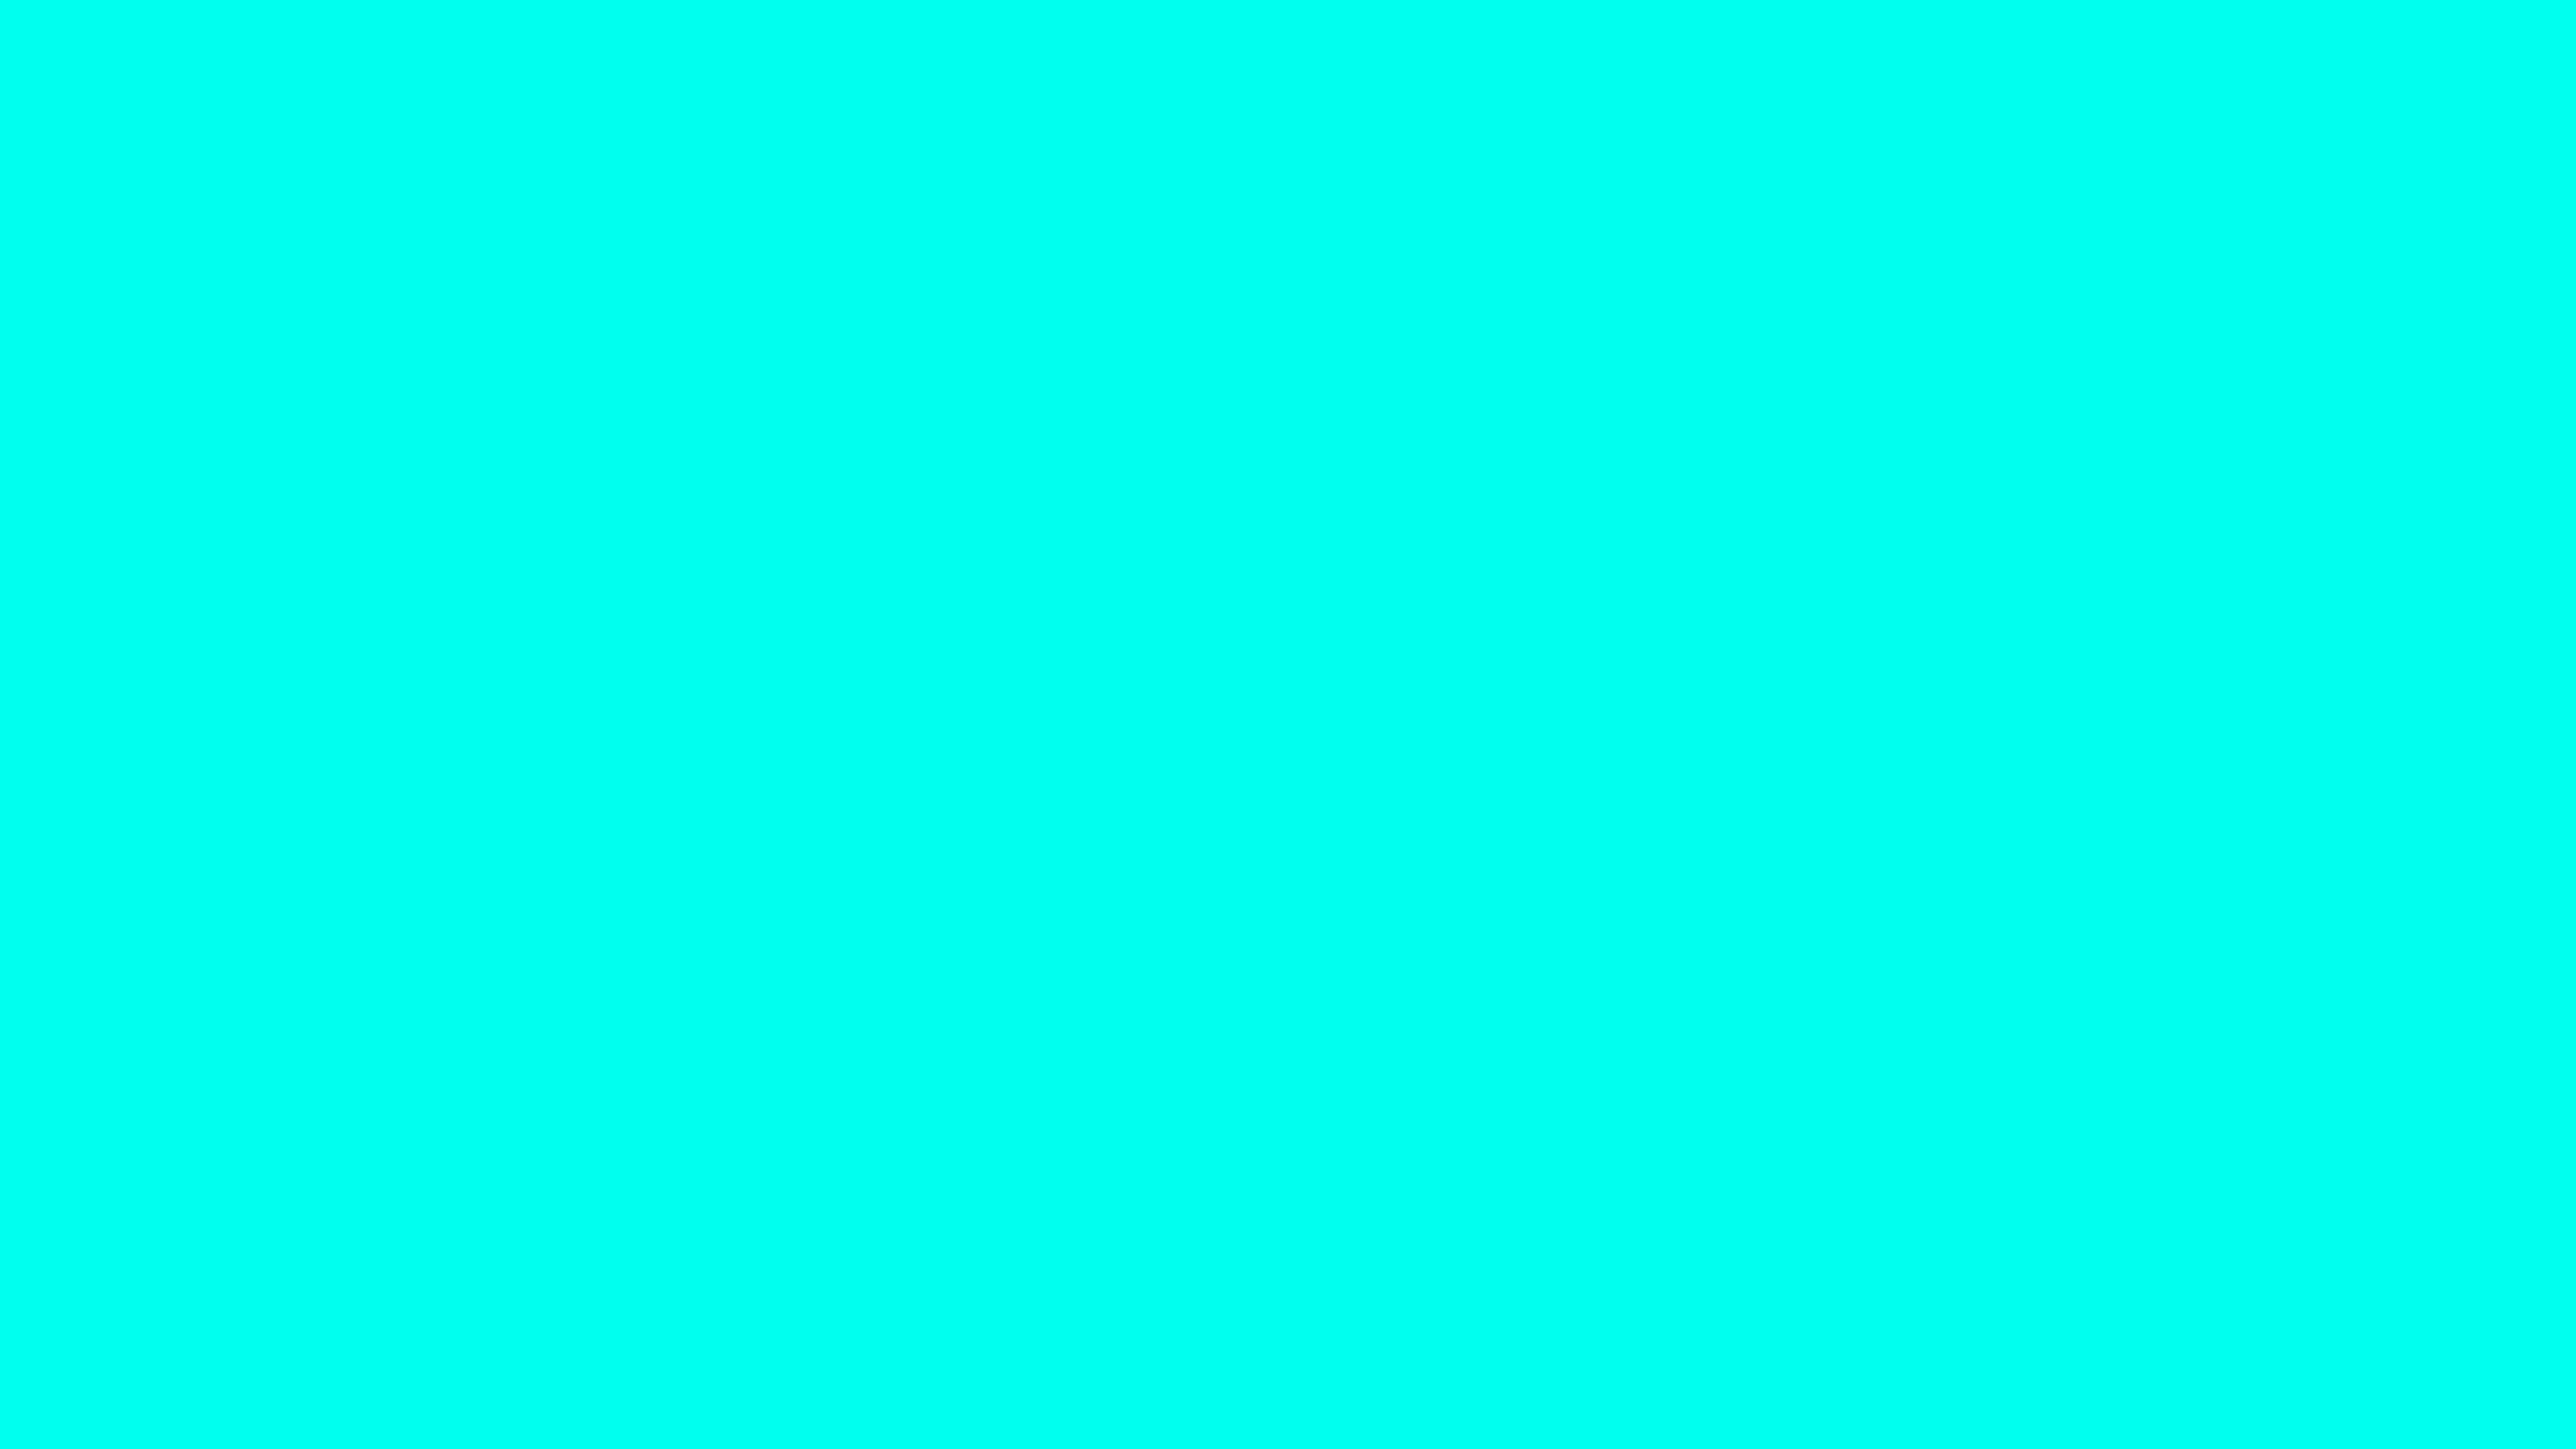 5120x2880 Turquoise Blue Solid Color Background